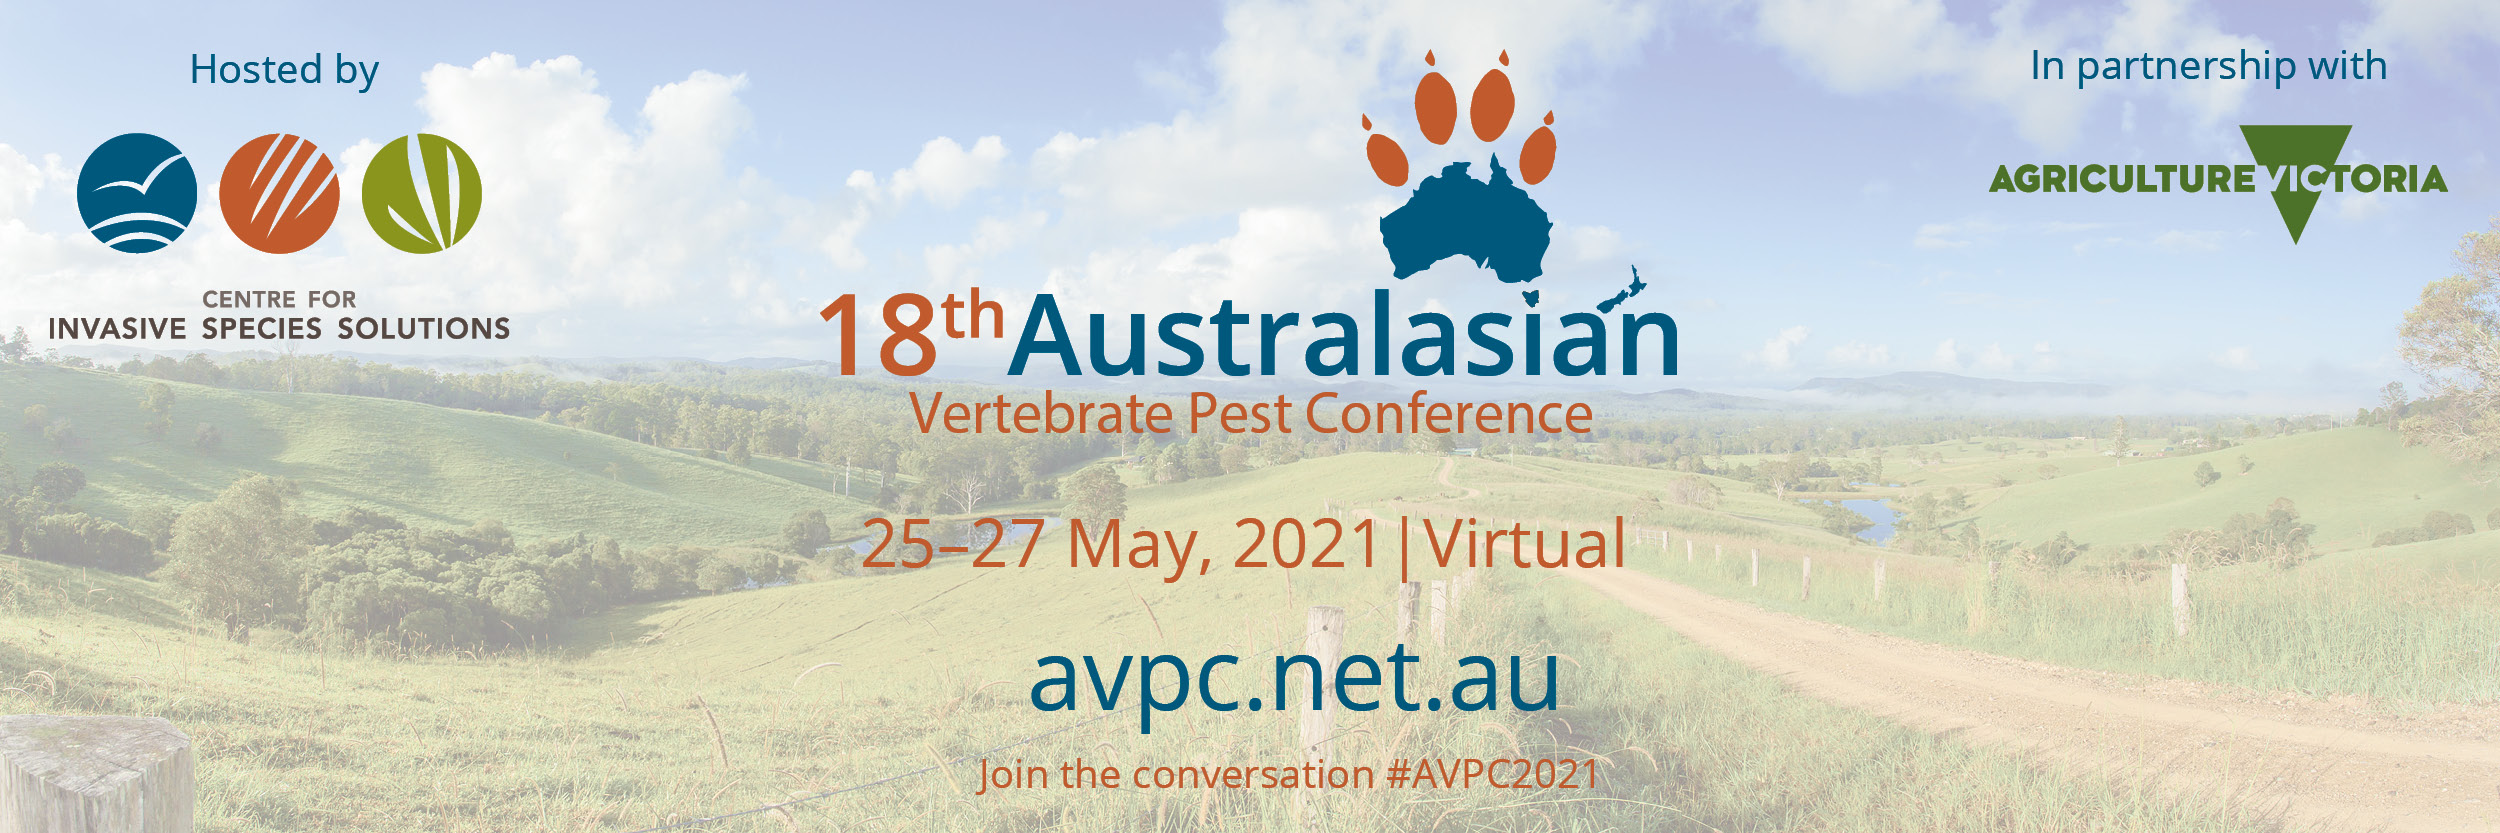 NRMjobs Notice 20007885 - 18th Australasian Vertebrate Pest Conference